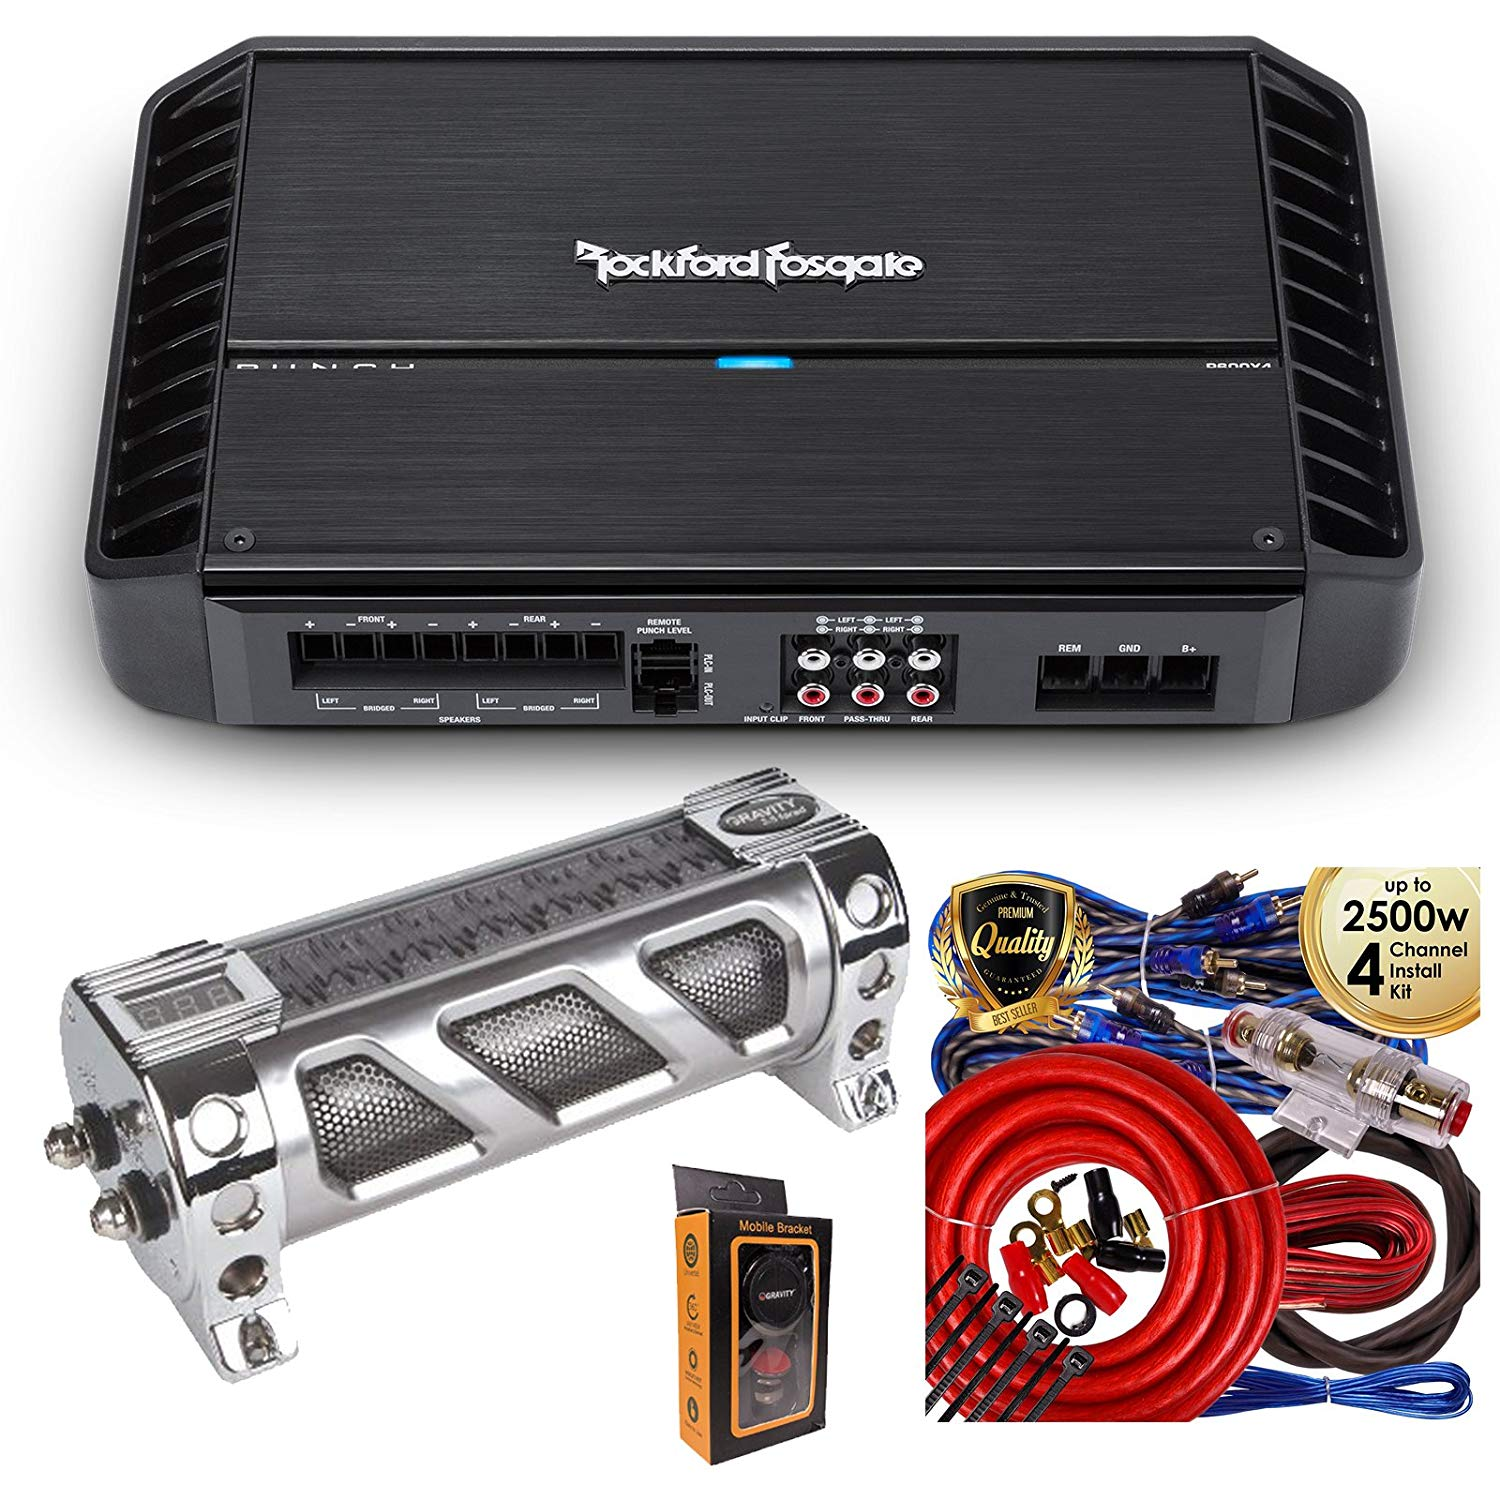 Cheap Fosgate 4 Channel Amp Find Deals On Amplifier Wiring Kit With Capacitor Get Quotations Rockford P600x4 600 Watts Punch Series Stereo Class Ab Car Power